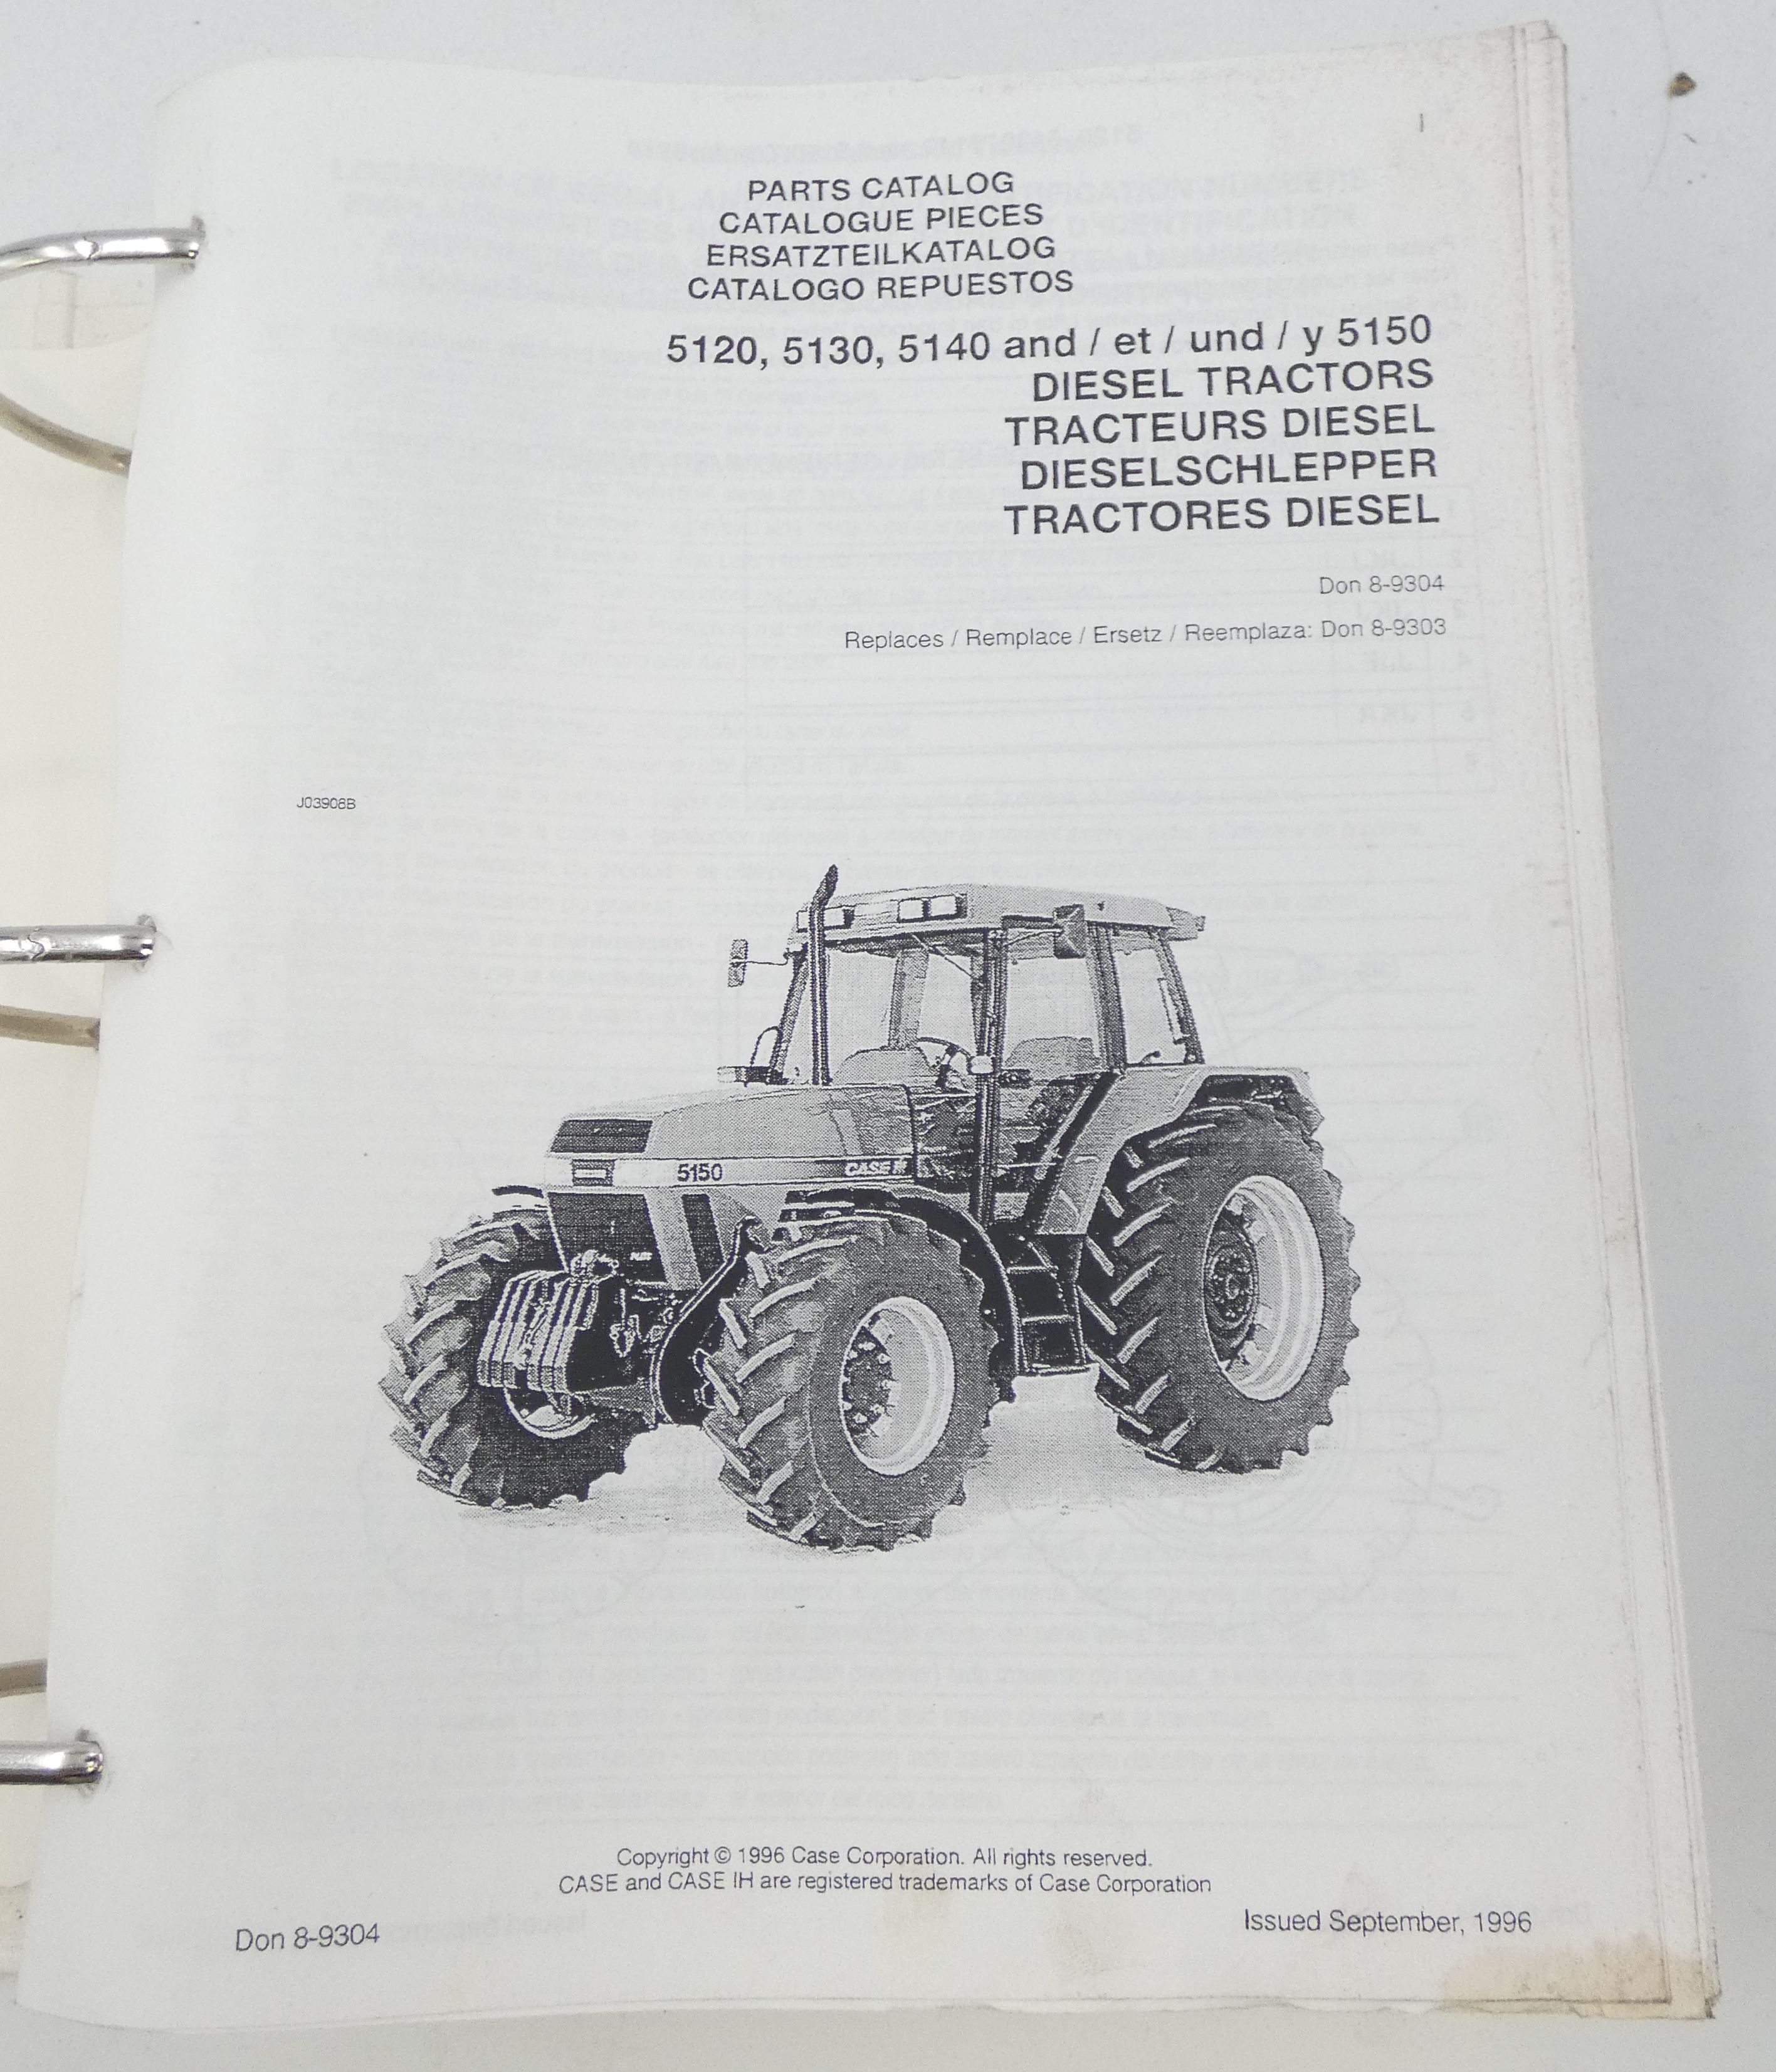 Case 5120, 5130, 5140 and 5150 diesel tractors parts catalog